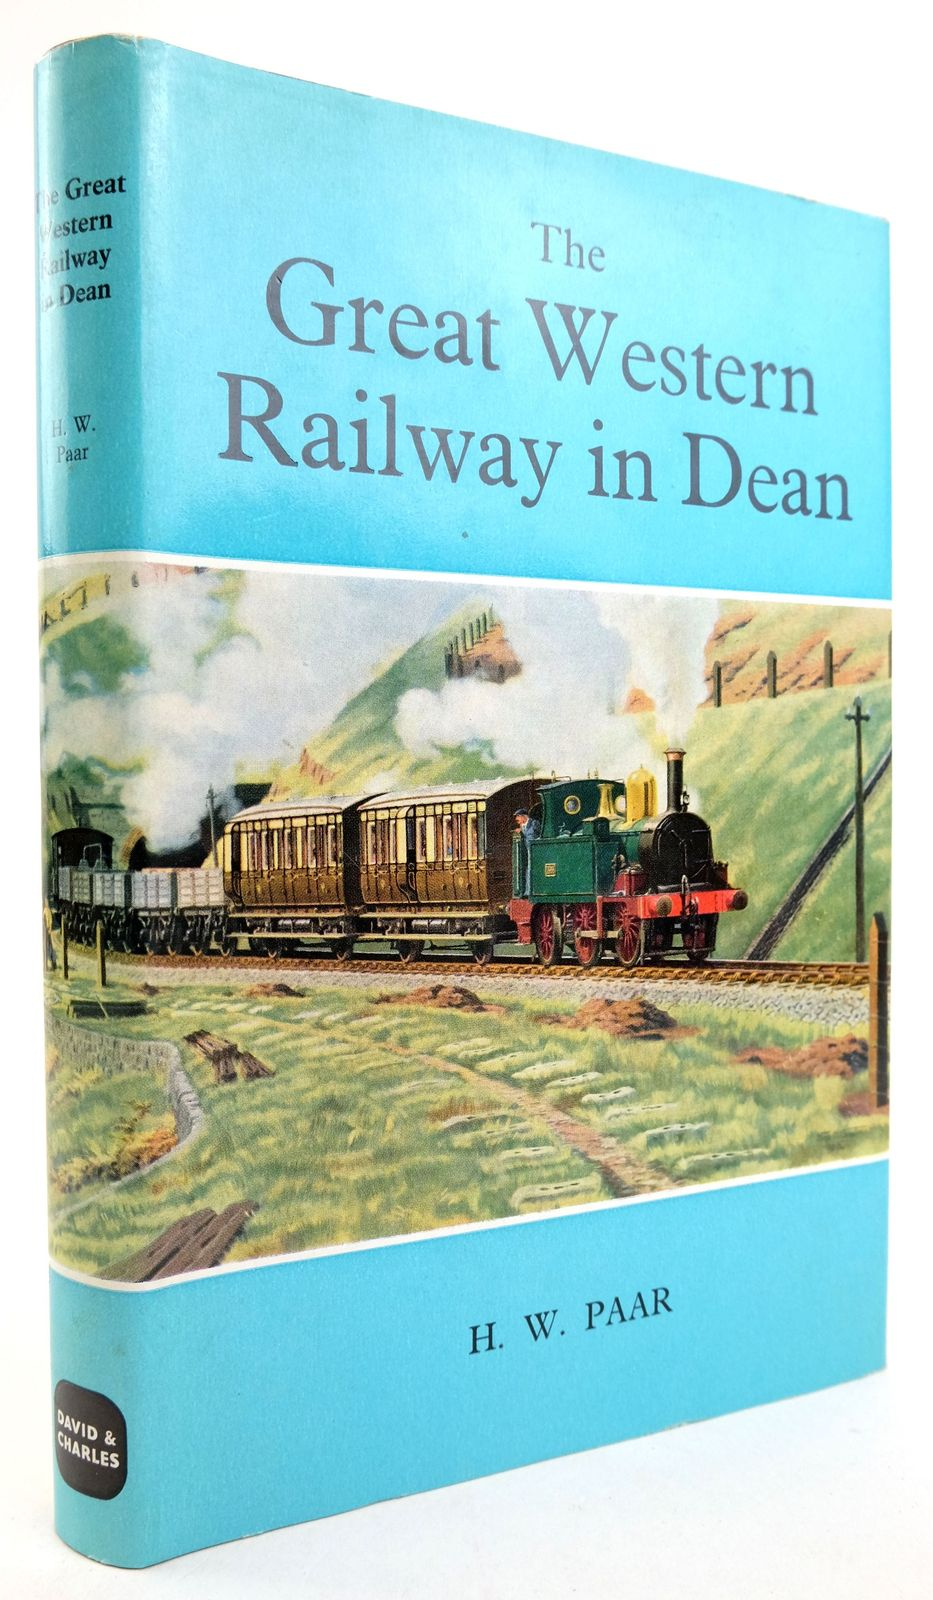 Photo of THE GREAT WESTERN RAILWAY IN DEAN: A HISTORY OF THE RAILWAYS OF THE FOREST OF DEAN: PART TWO written by Paar, H.W. published by David & Charles (STOCK CODE: 1819847)  for sale by Stella & Rose's Books